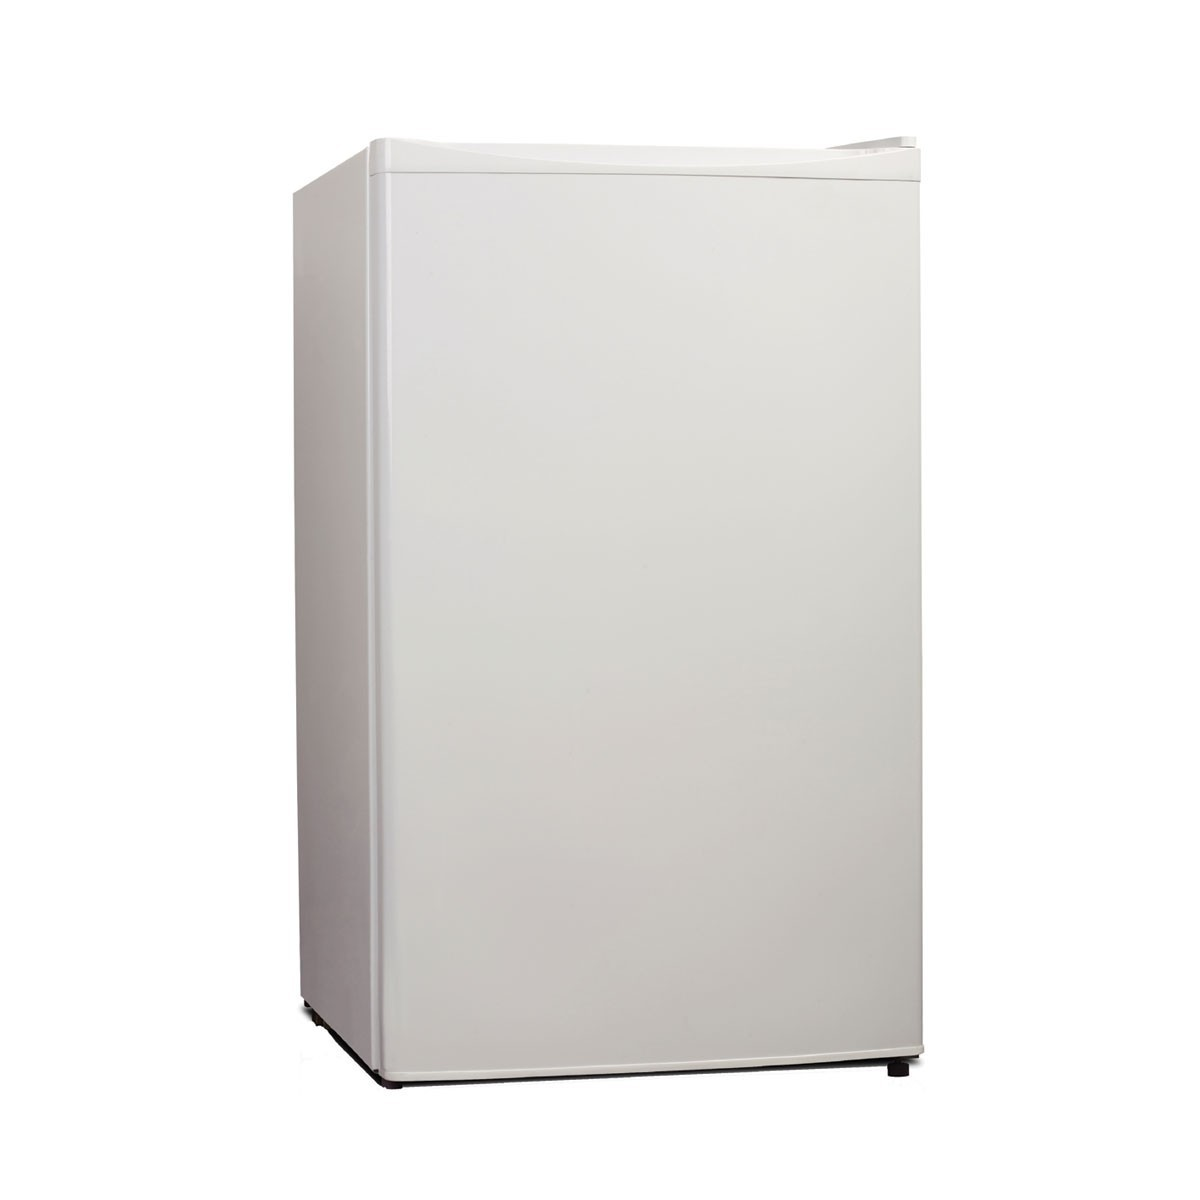 Cheap One Doors Fridges Freezers